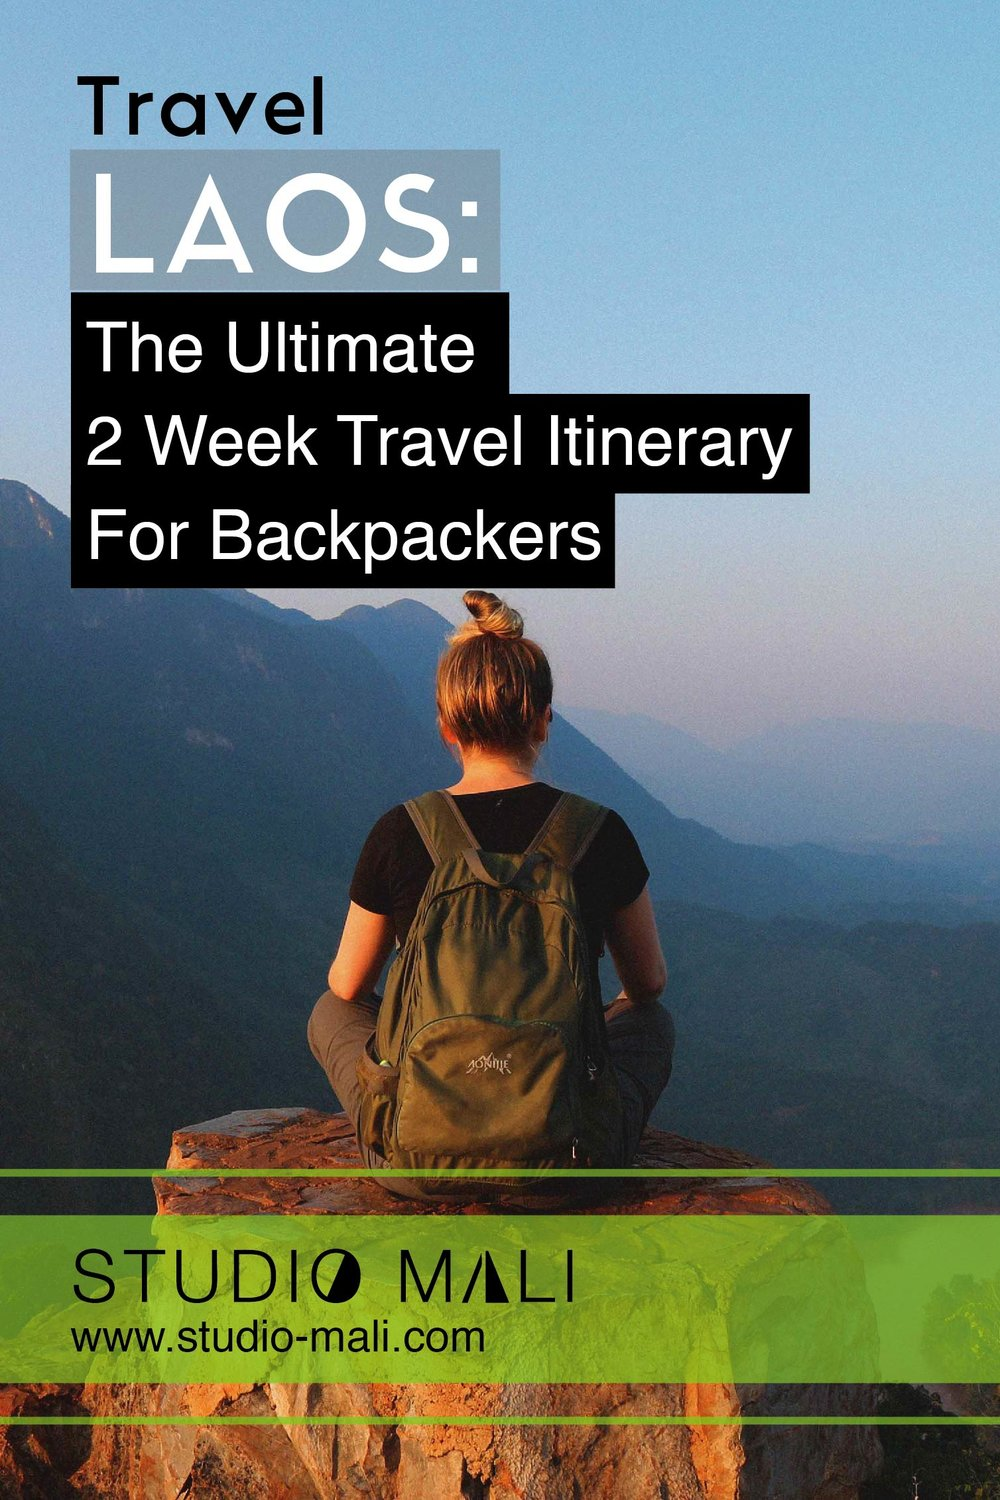 Laos - The Ultimate 2 Week Travel Itinerary For Backpackers, by Studio Mali.jpg